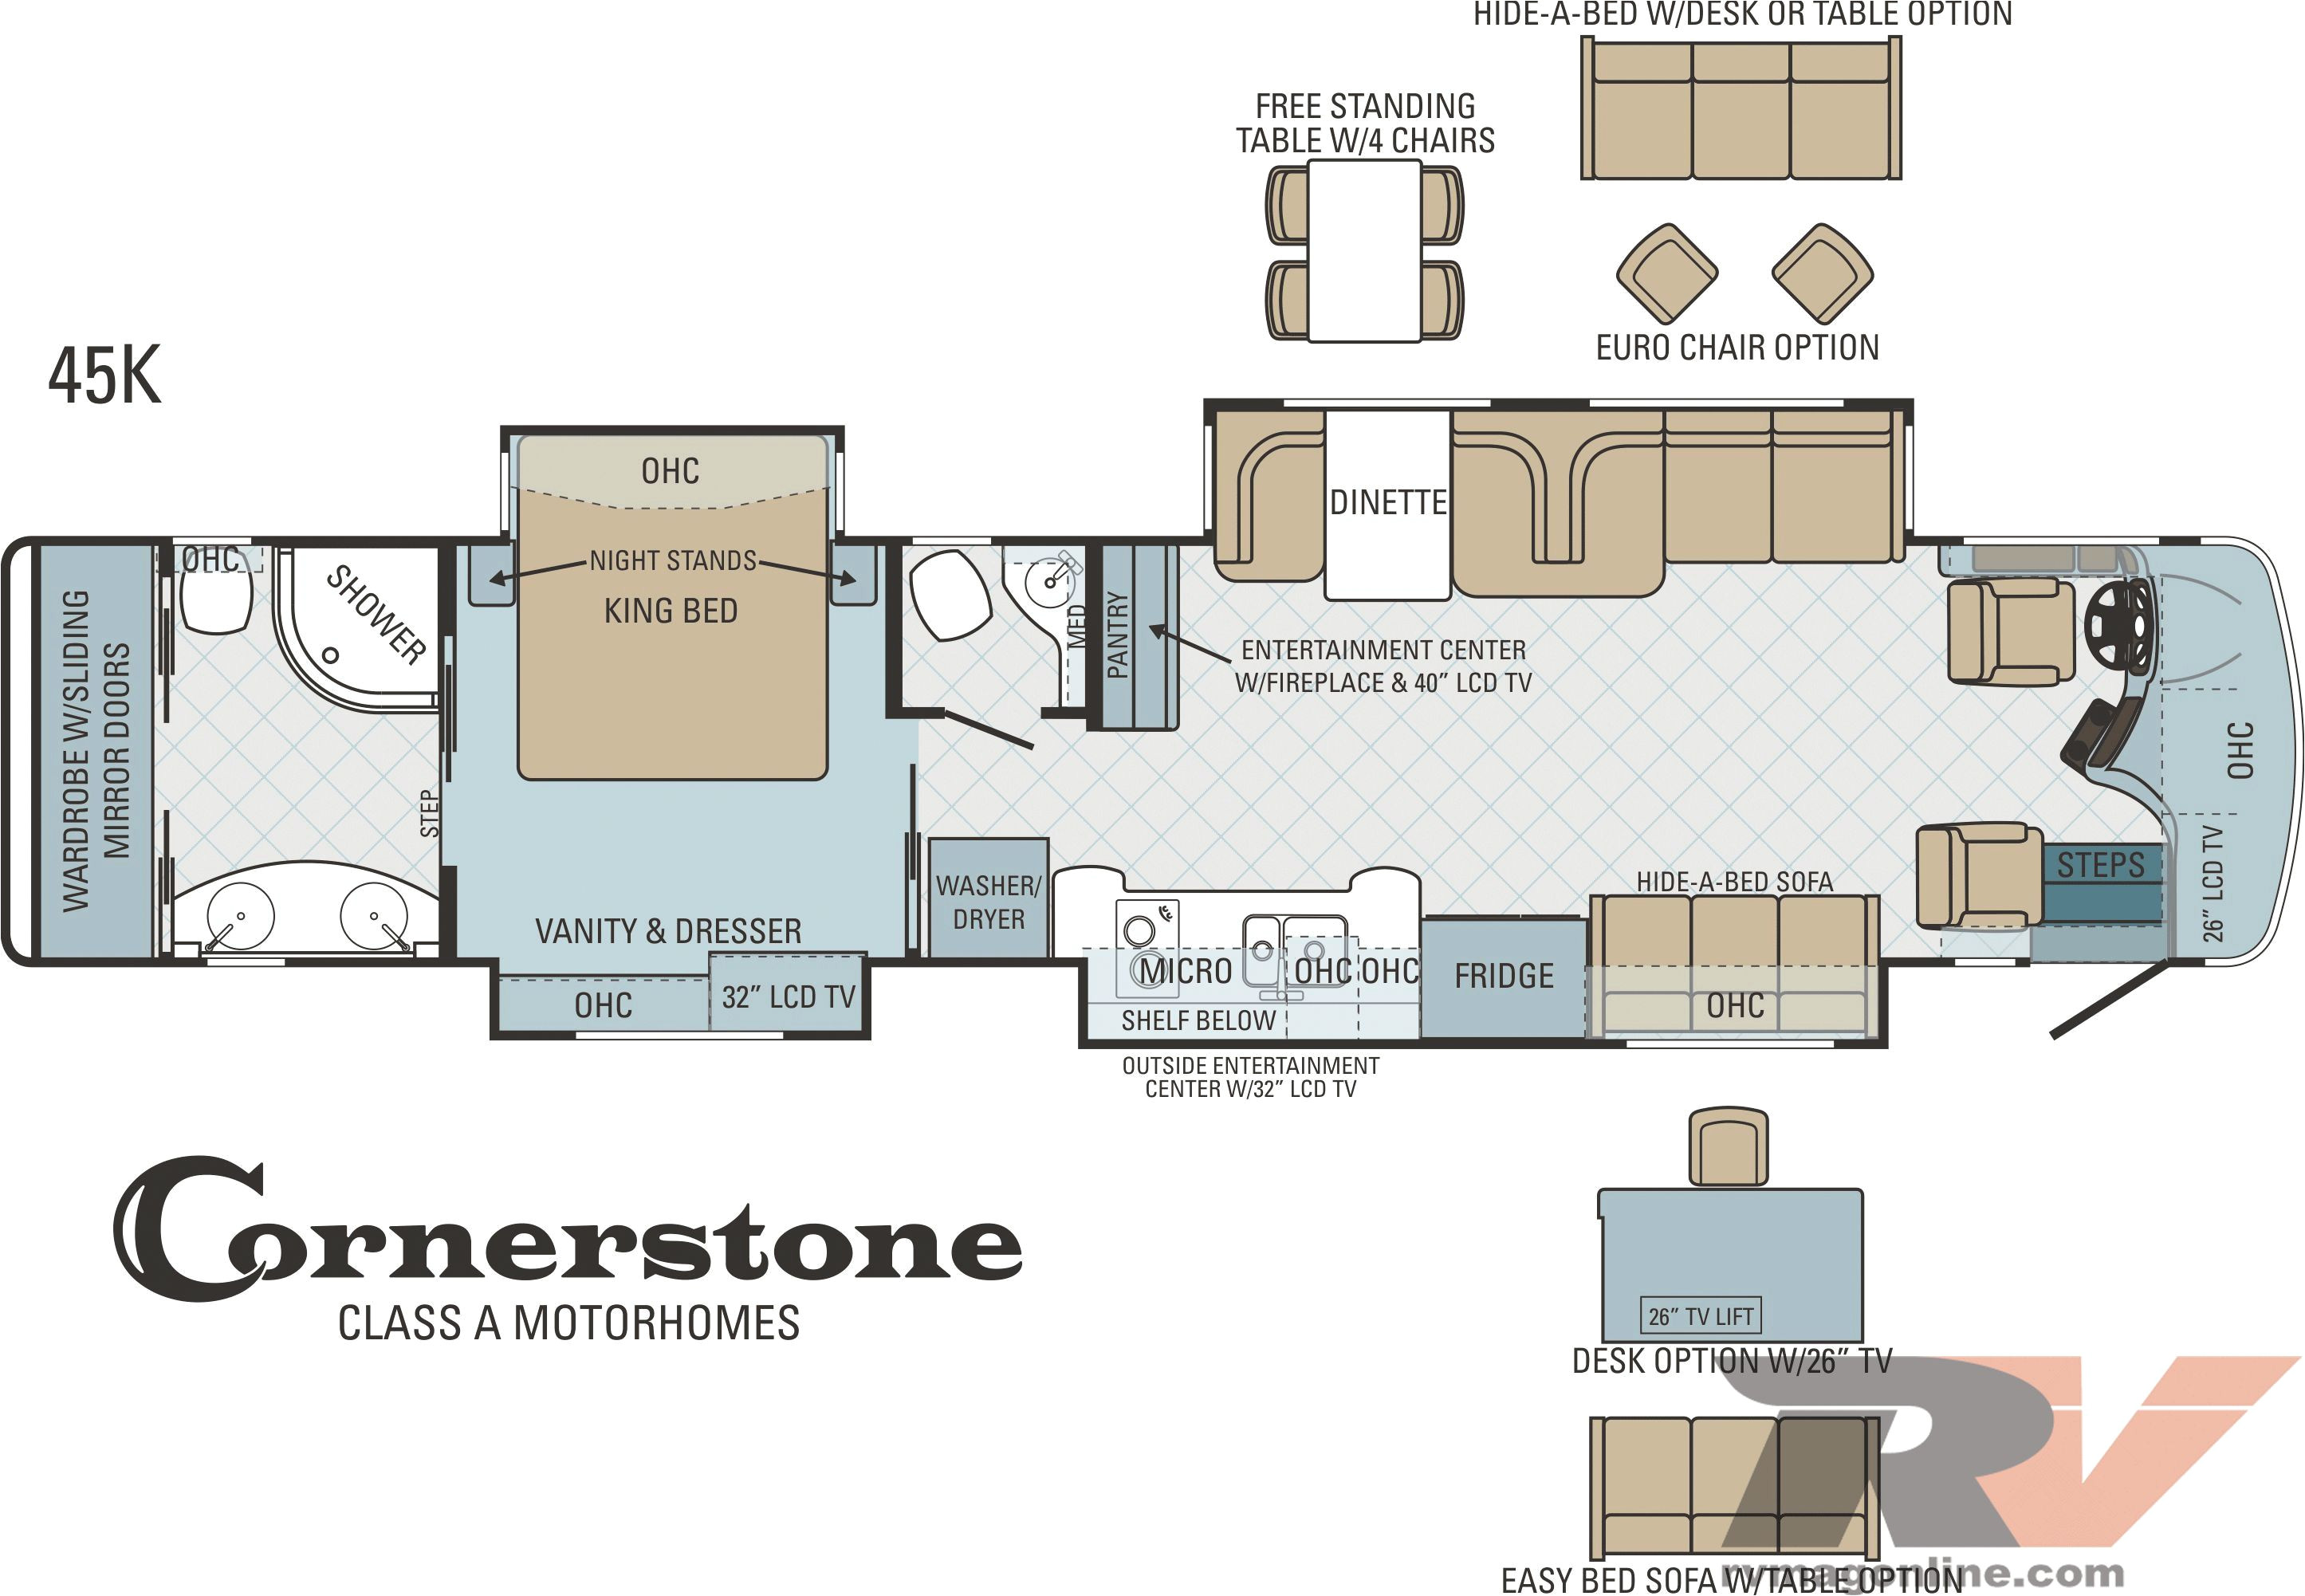 Motor Home Plans 2013 Entegra Cornerstone 45k Motorhome Overview Rv